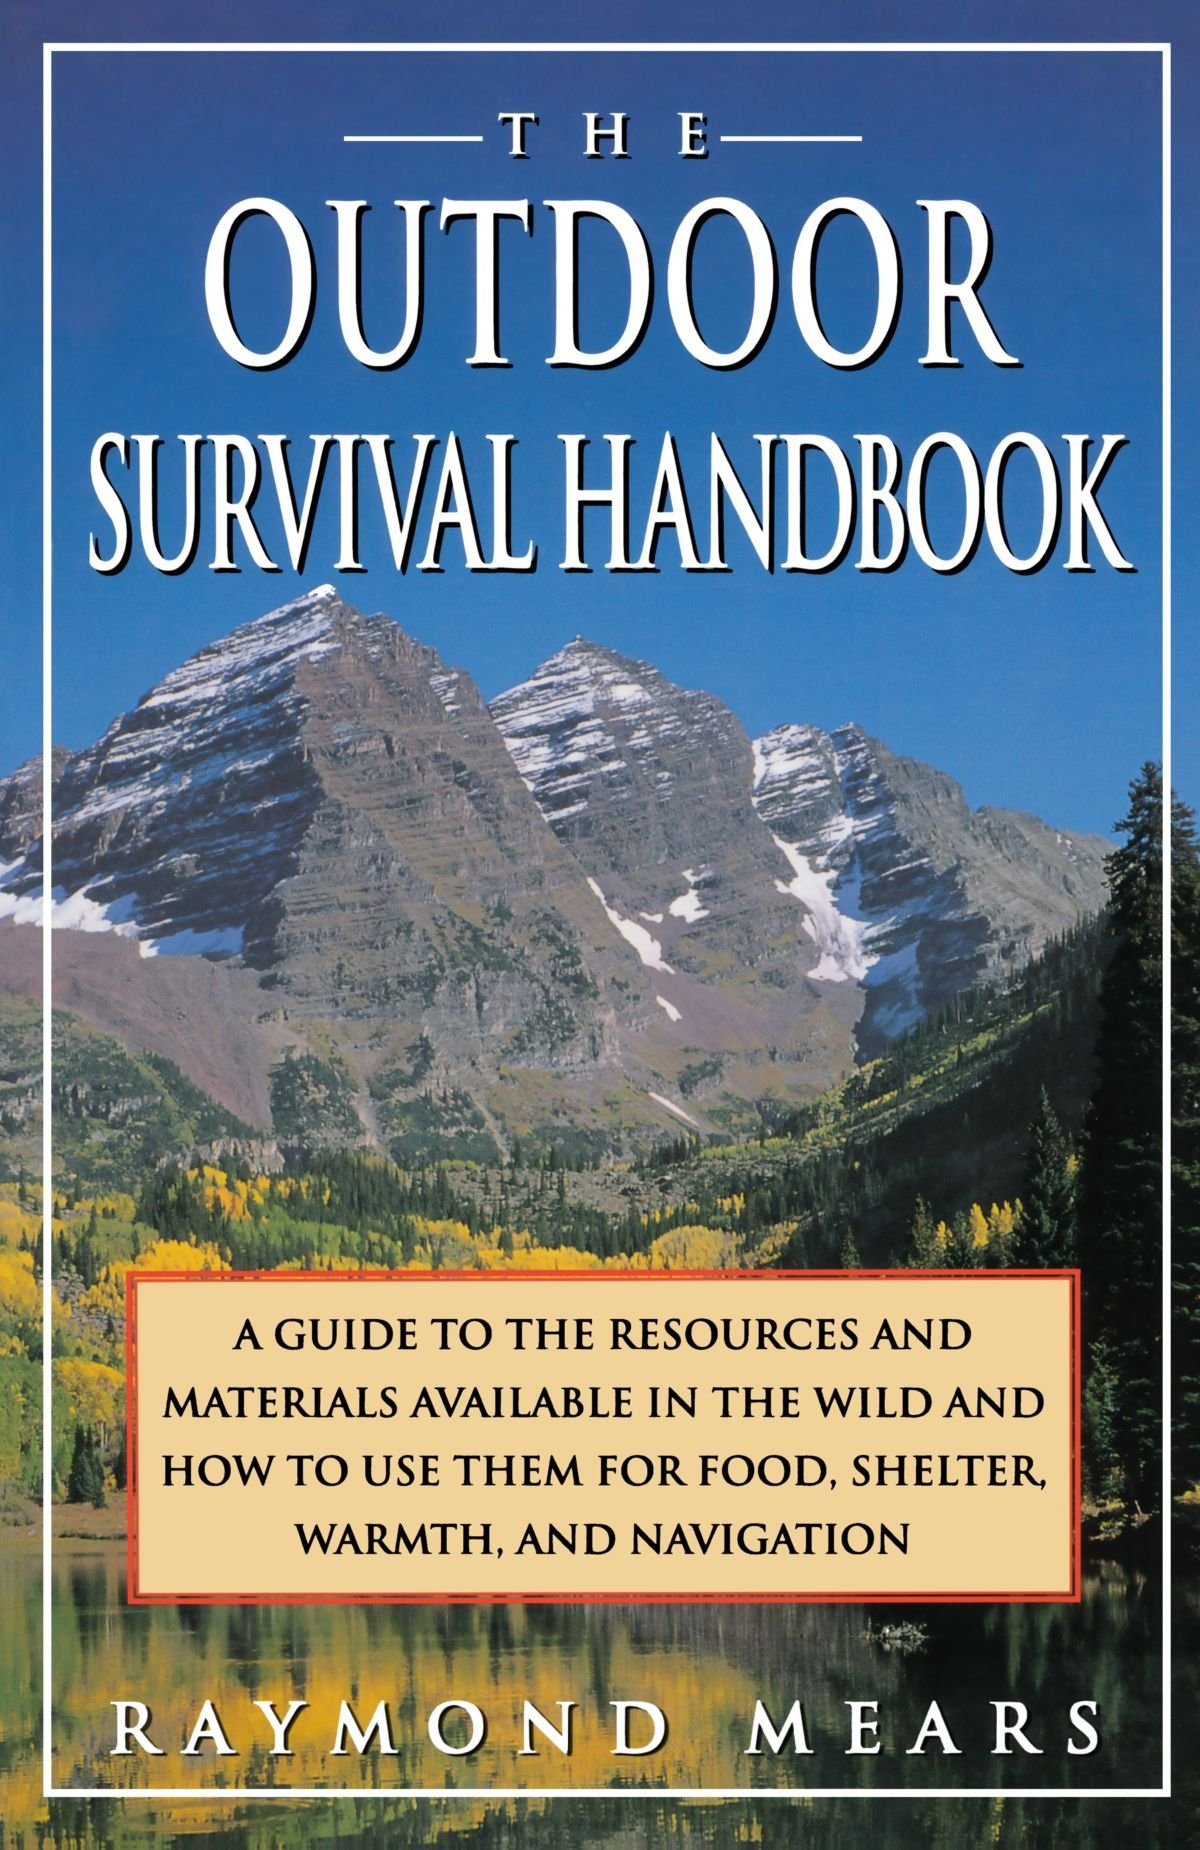 The Outdoor Survival Handbook: A Guide To The Resources & Material Available In The Wild & How To Use Them For Food, Shelter, Warmth, & Navigation by St. Martin's Griffin